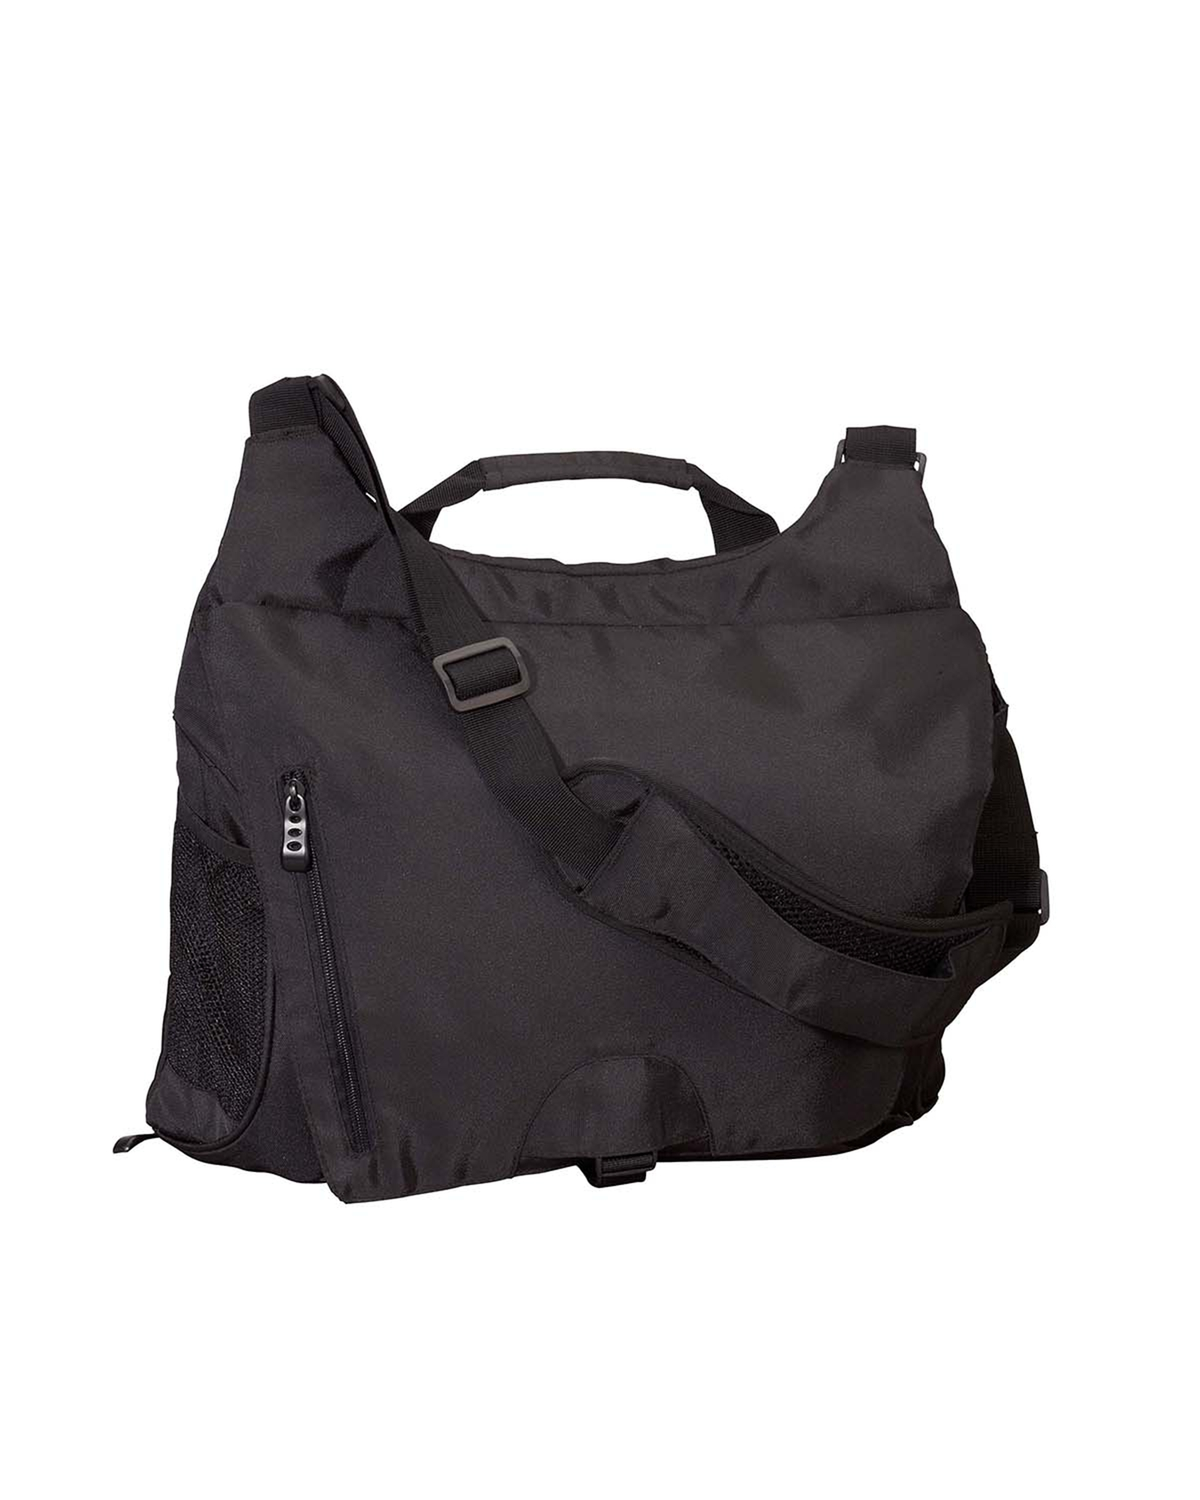 BAGedge BE045 - Unisex Messenger Tech Bag